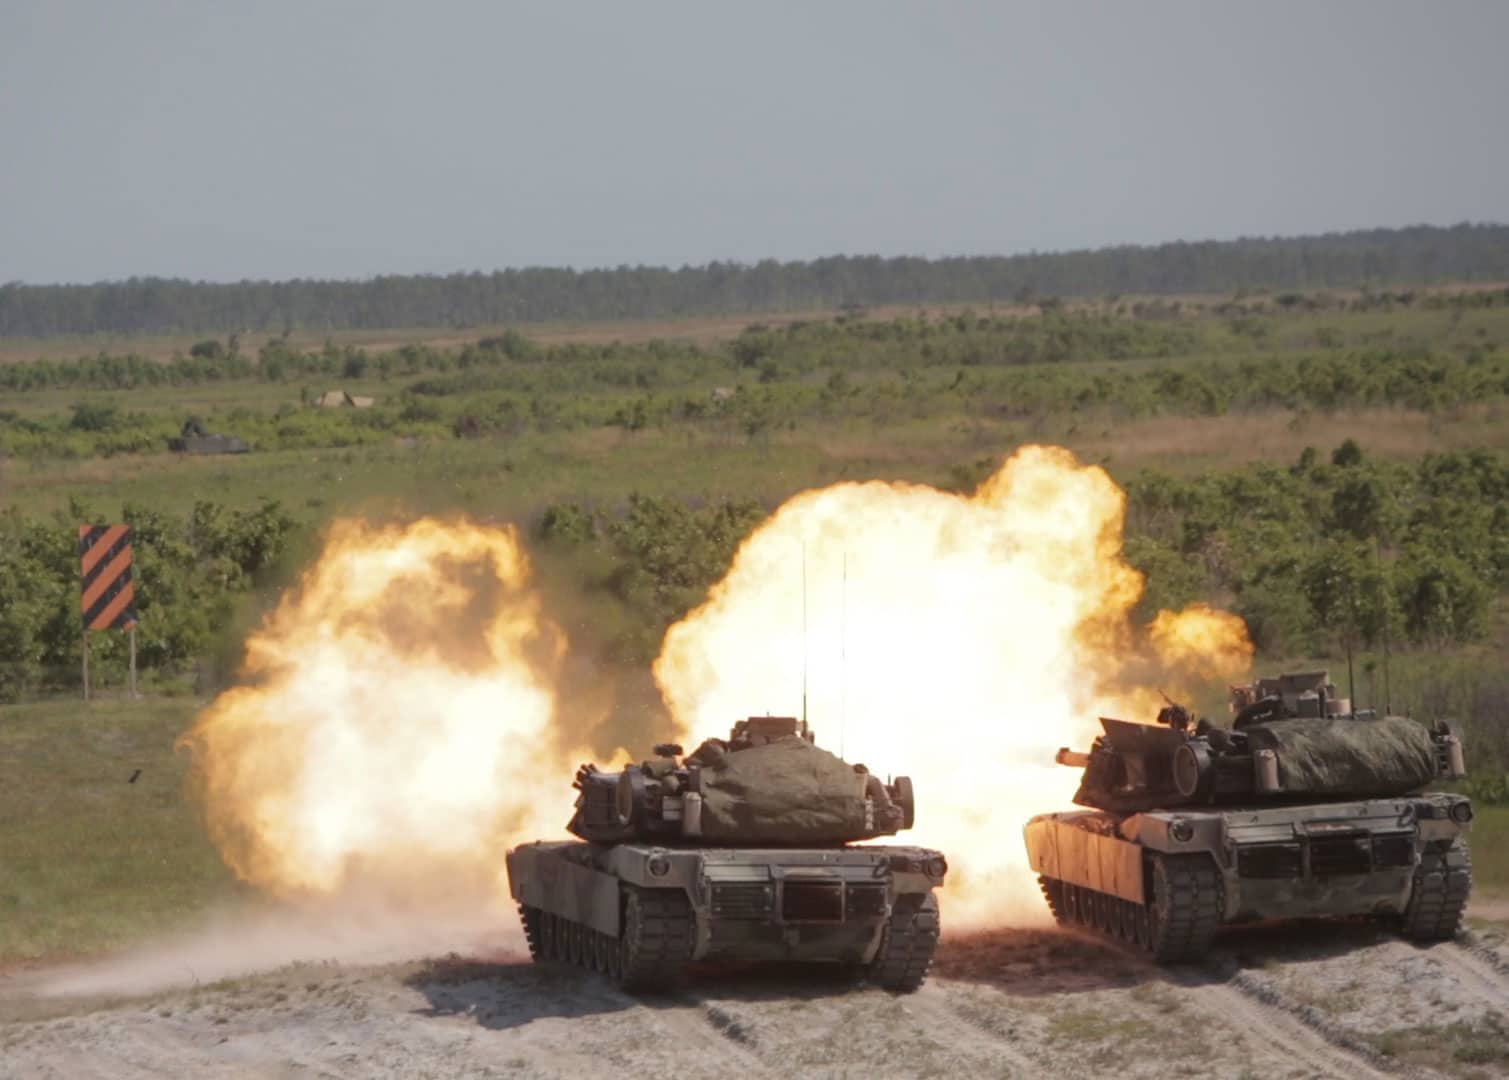 Marines deliver synchronized fire in their M1A1 Abrams tanks during a fire mission at Marine Corps Base Camp Lejeune, N.C., May 17, 2017. The Marines are participating in Burmese Chase, an annual, multi-lateral training exercise between U.S. armed forces and NATO members.